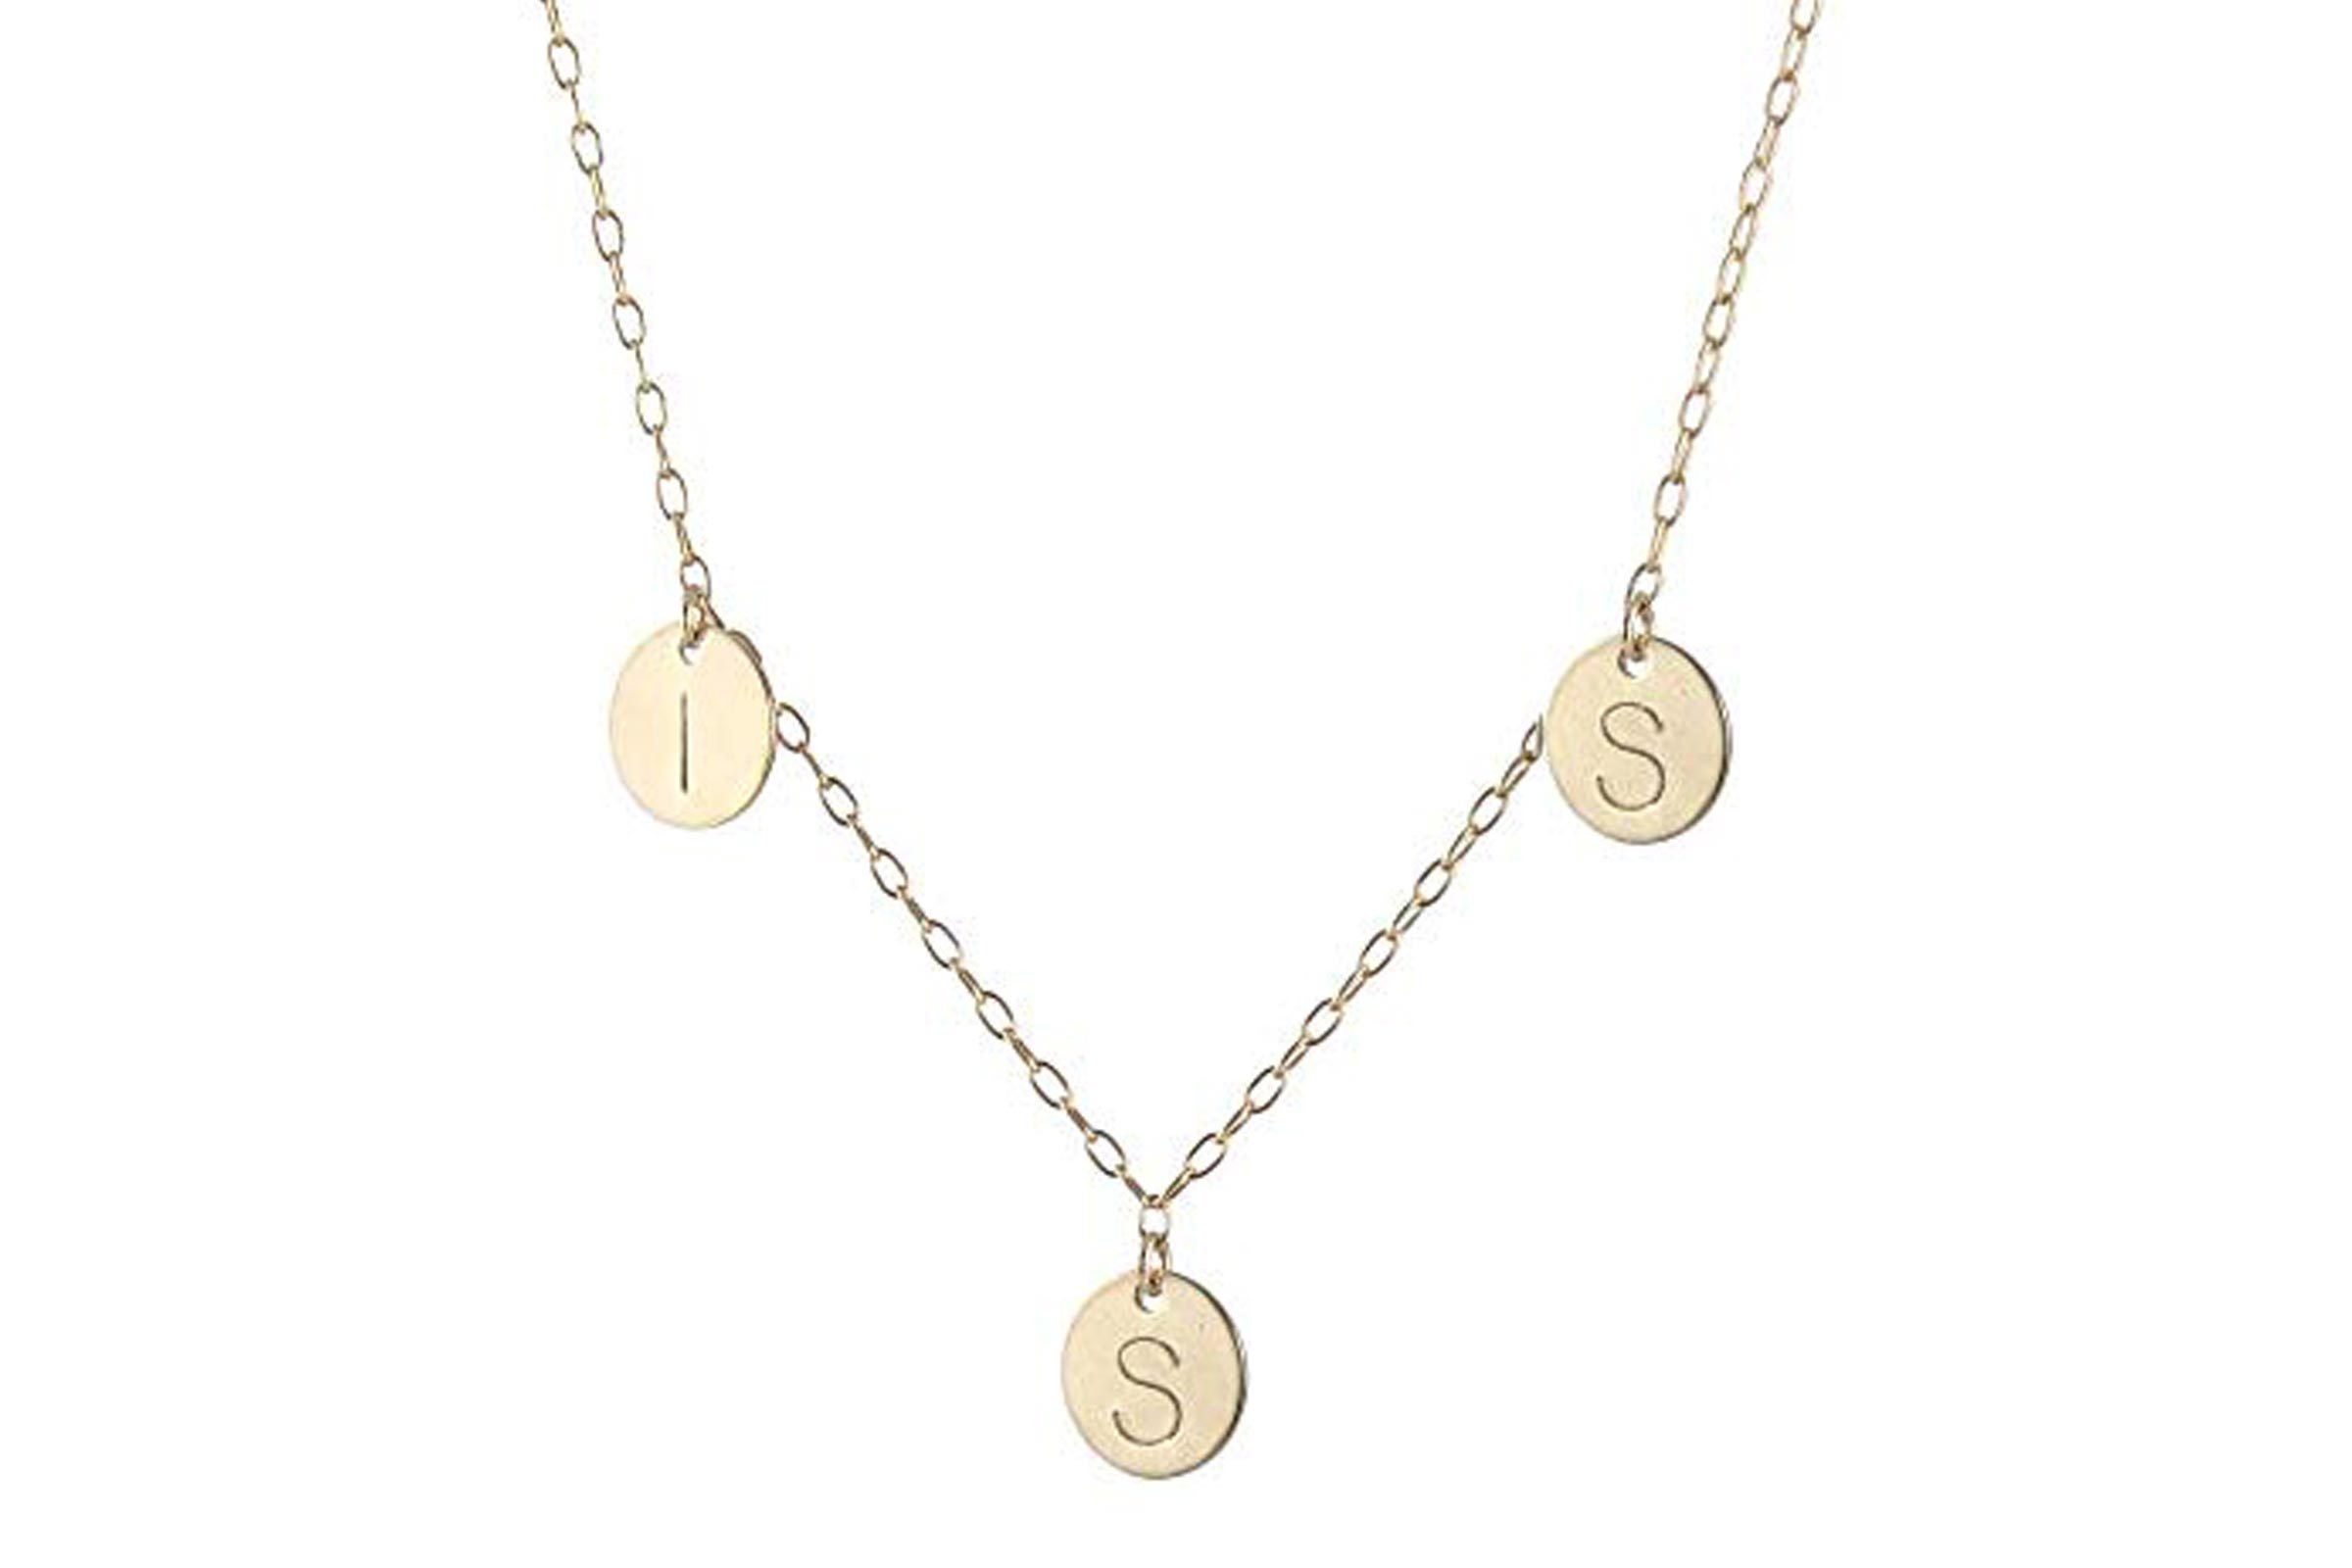 Family Initials Necklace - 14k gold-filled